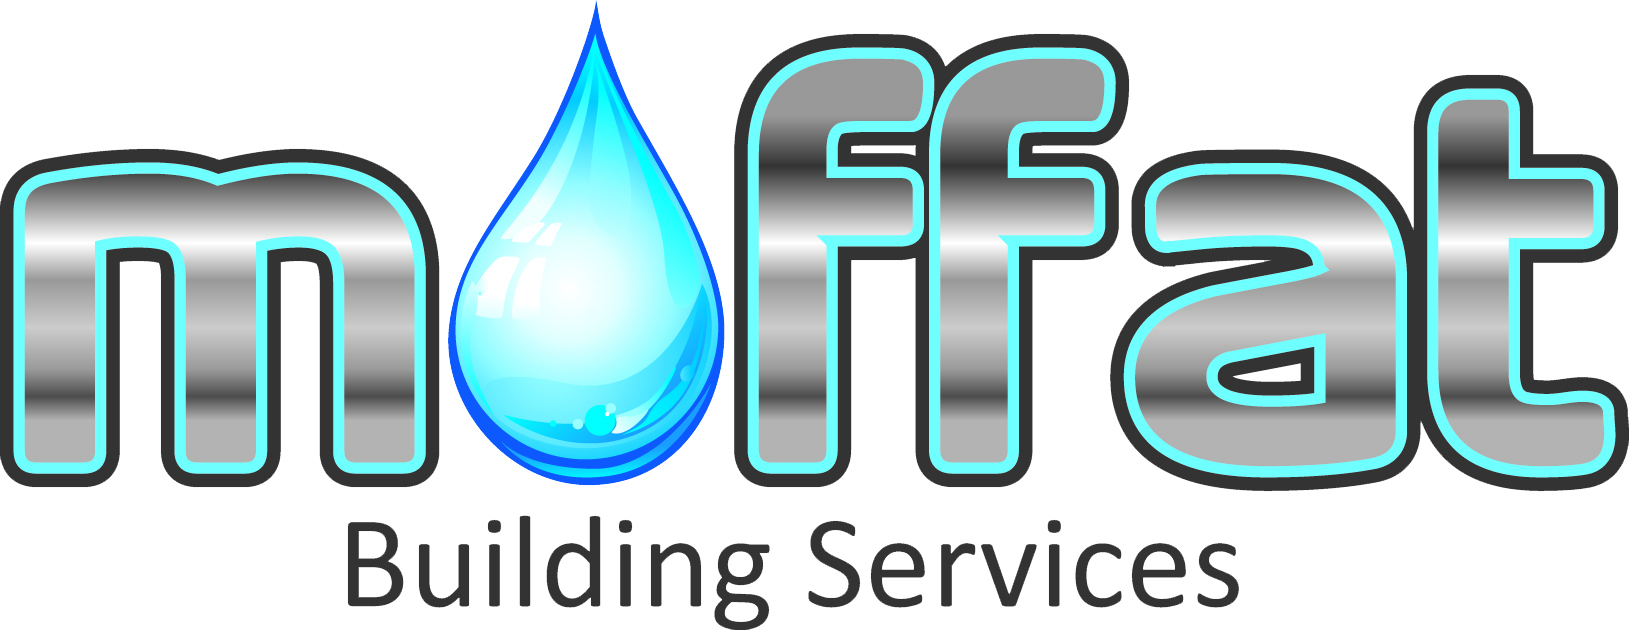 """<p><span style=""""font-size: 18px; color: #800000;""""><strong>Moffat Building Services&nbsp;Your local ALL TRADES building company</strong></span></p>"""